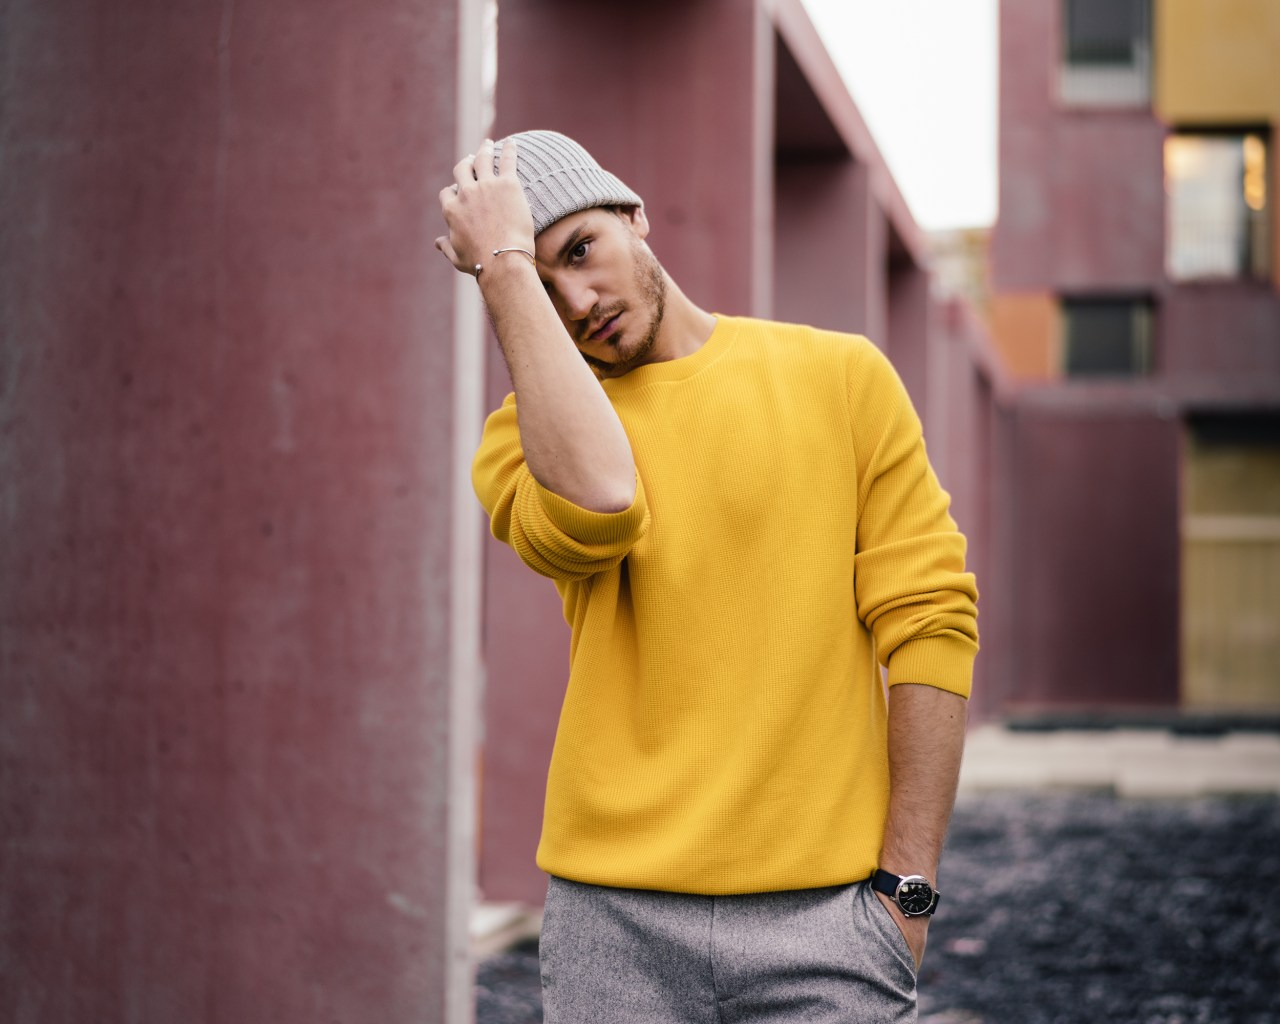 cos yellow cotton sweater light grey beanie men's fashion style swiss blogger infashionity henri balit